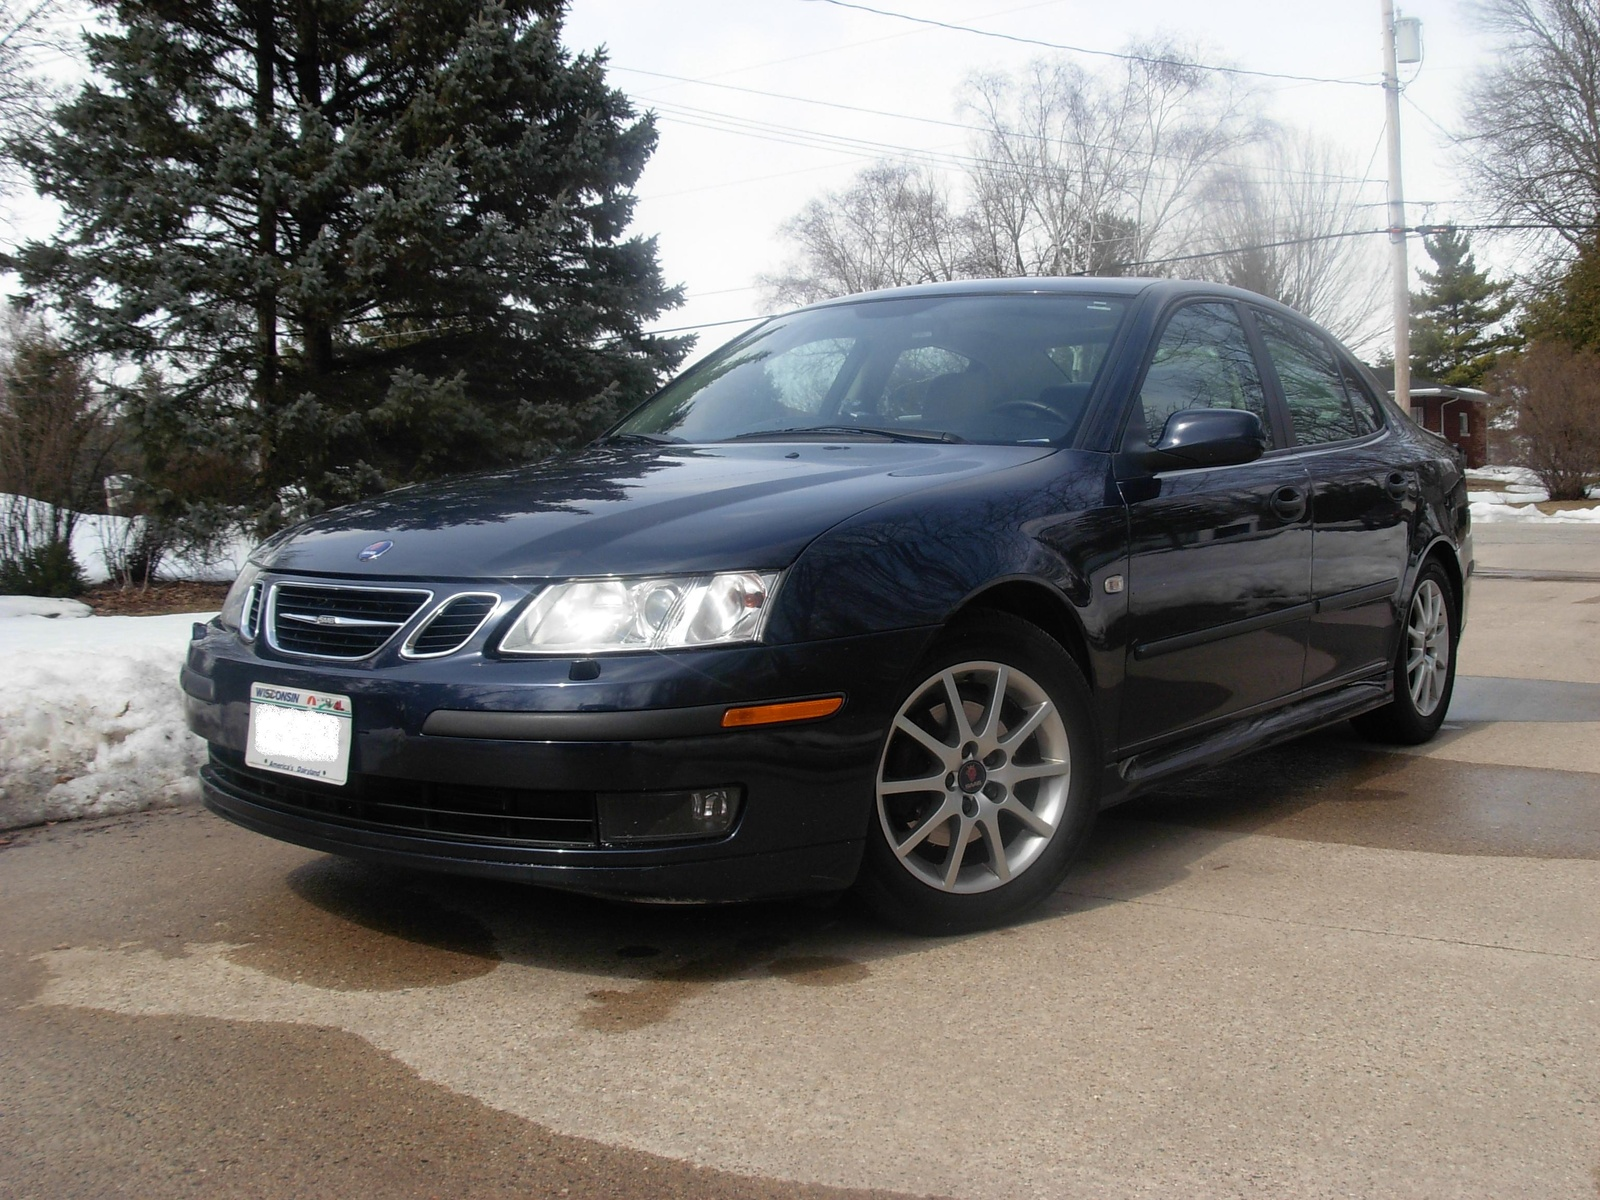 2004 Saab 9-3 Linear picture, exterior